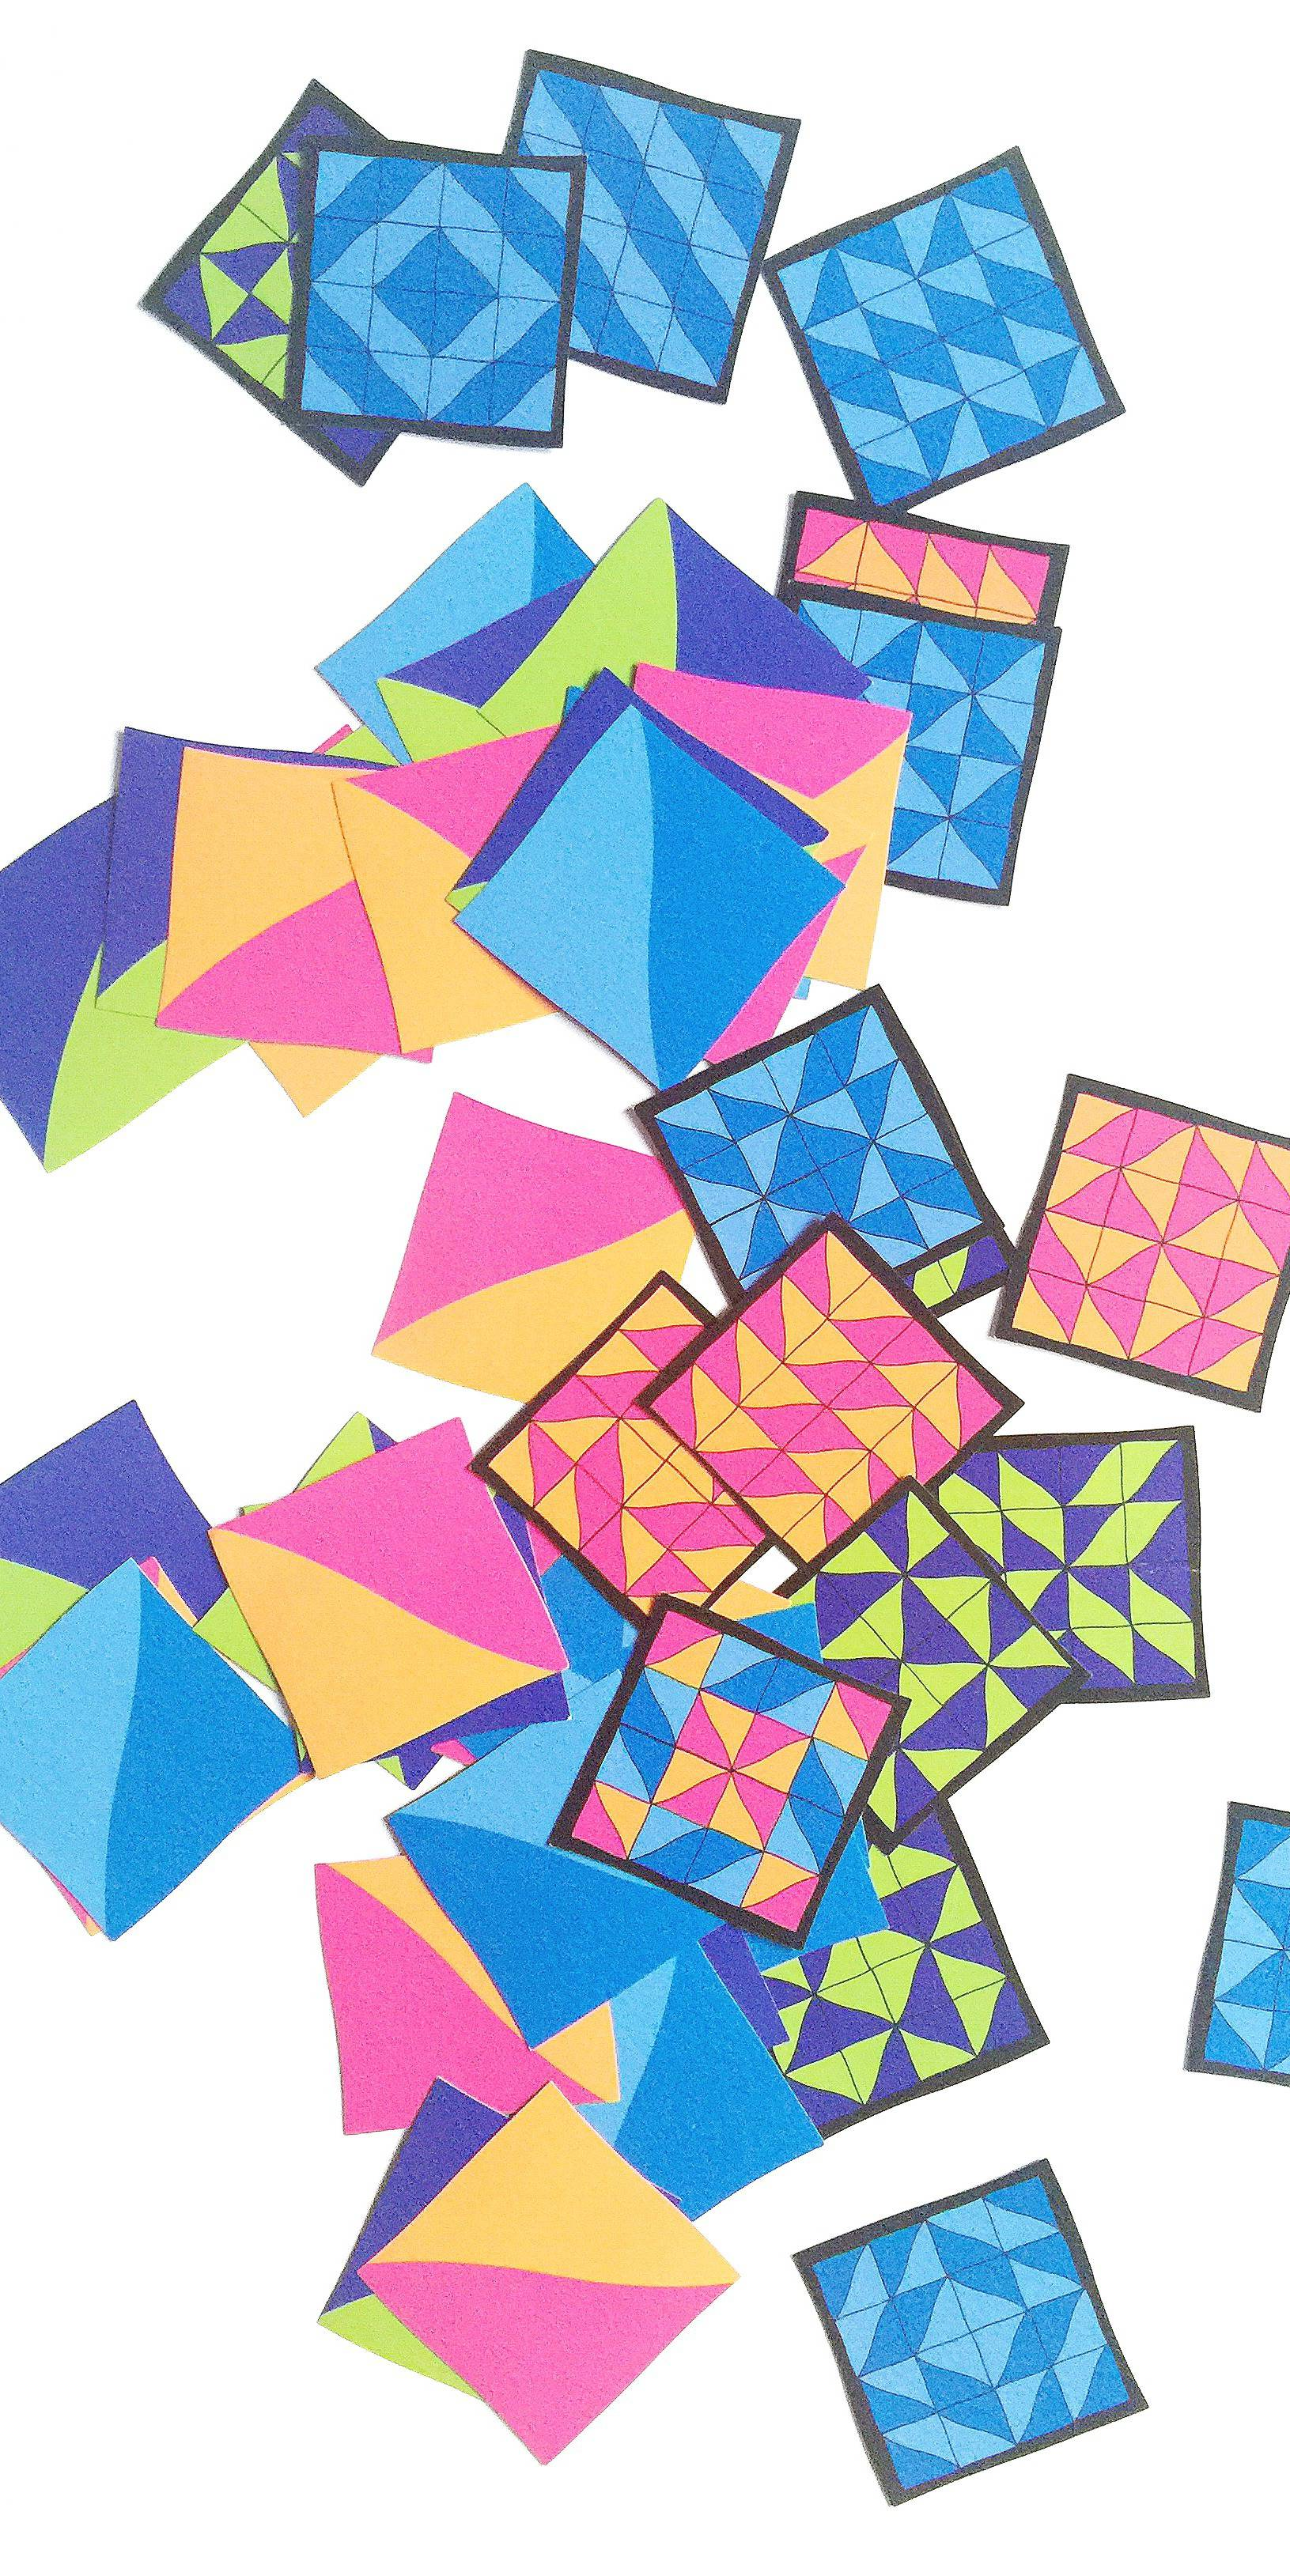 Flashback Friday: Klutz Quilting Fflashcards for half-square triangles